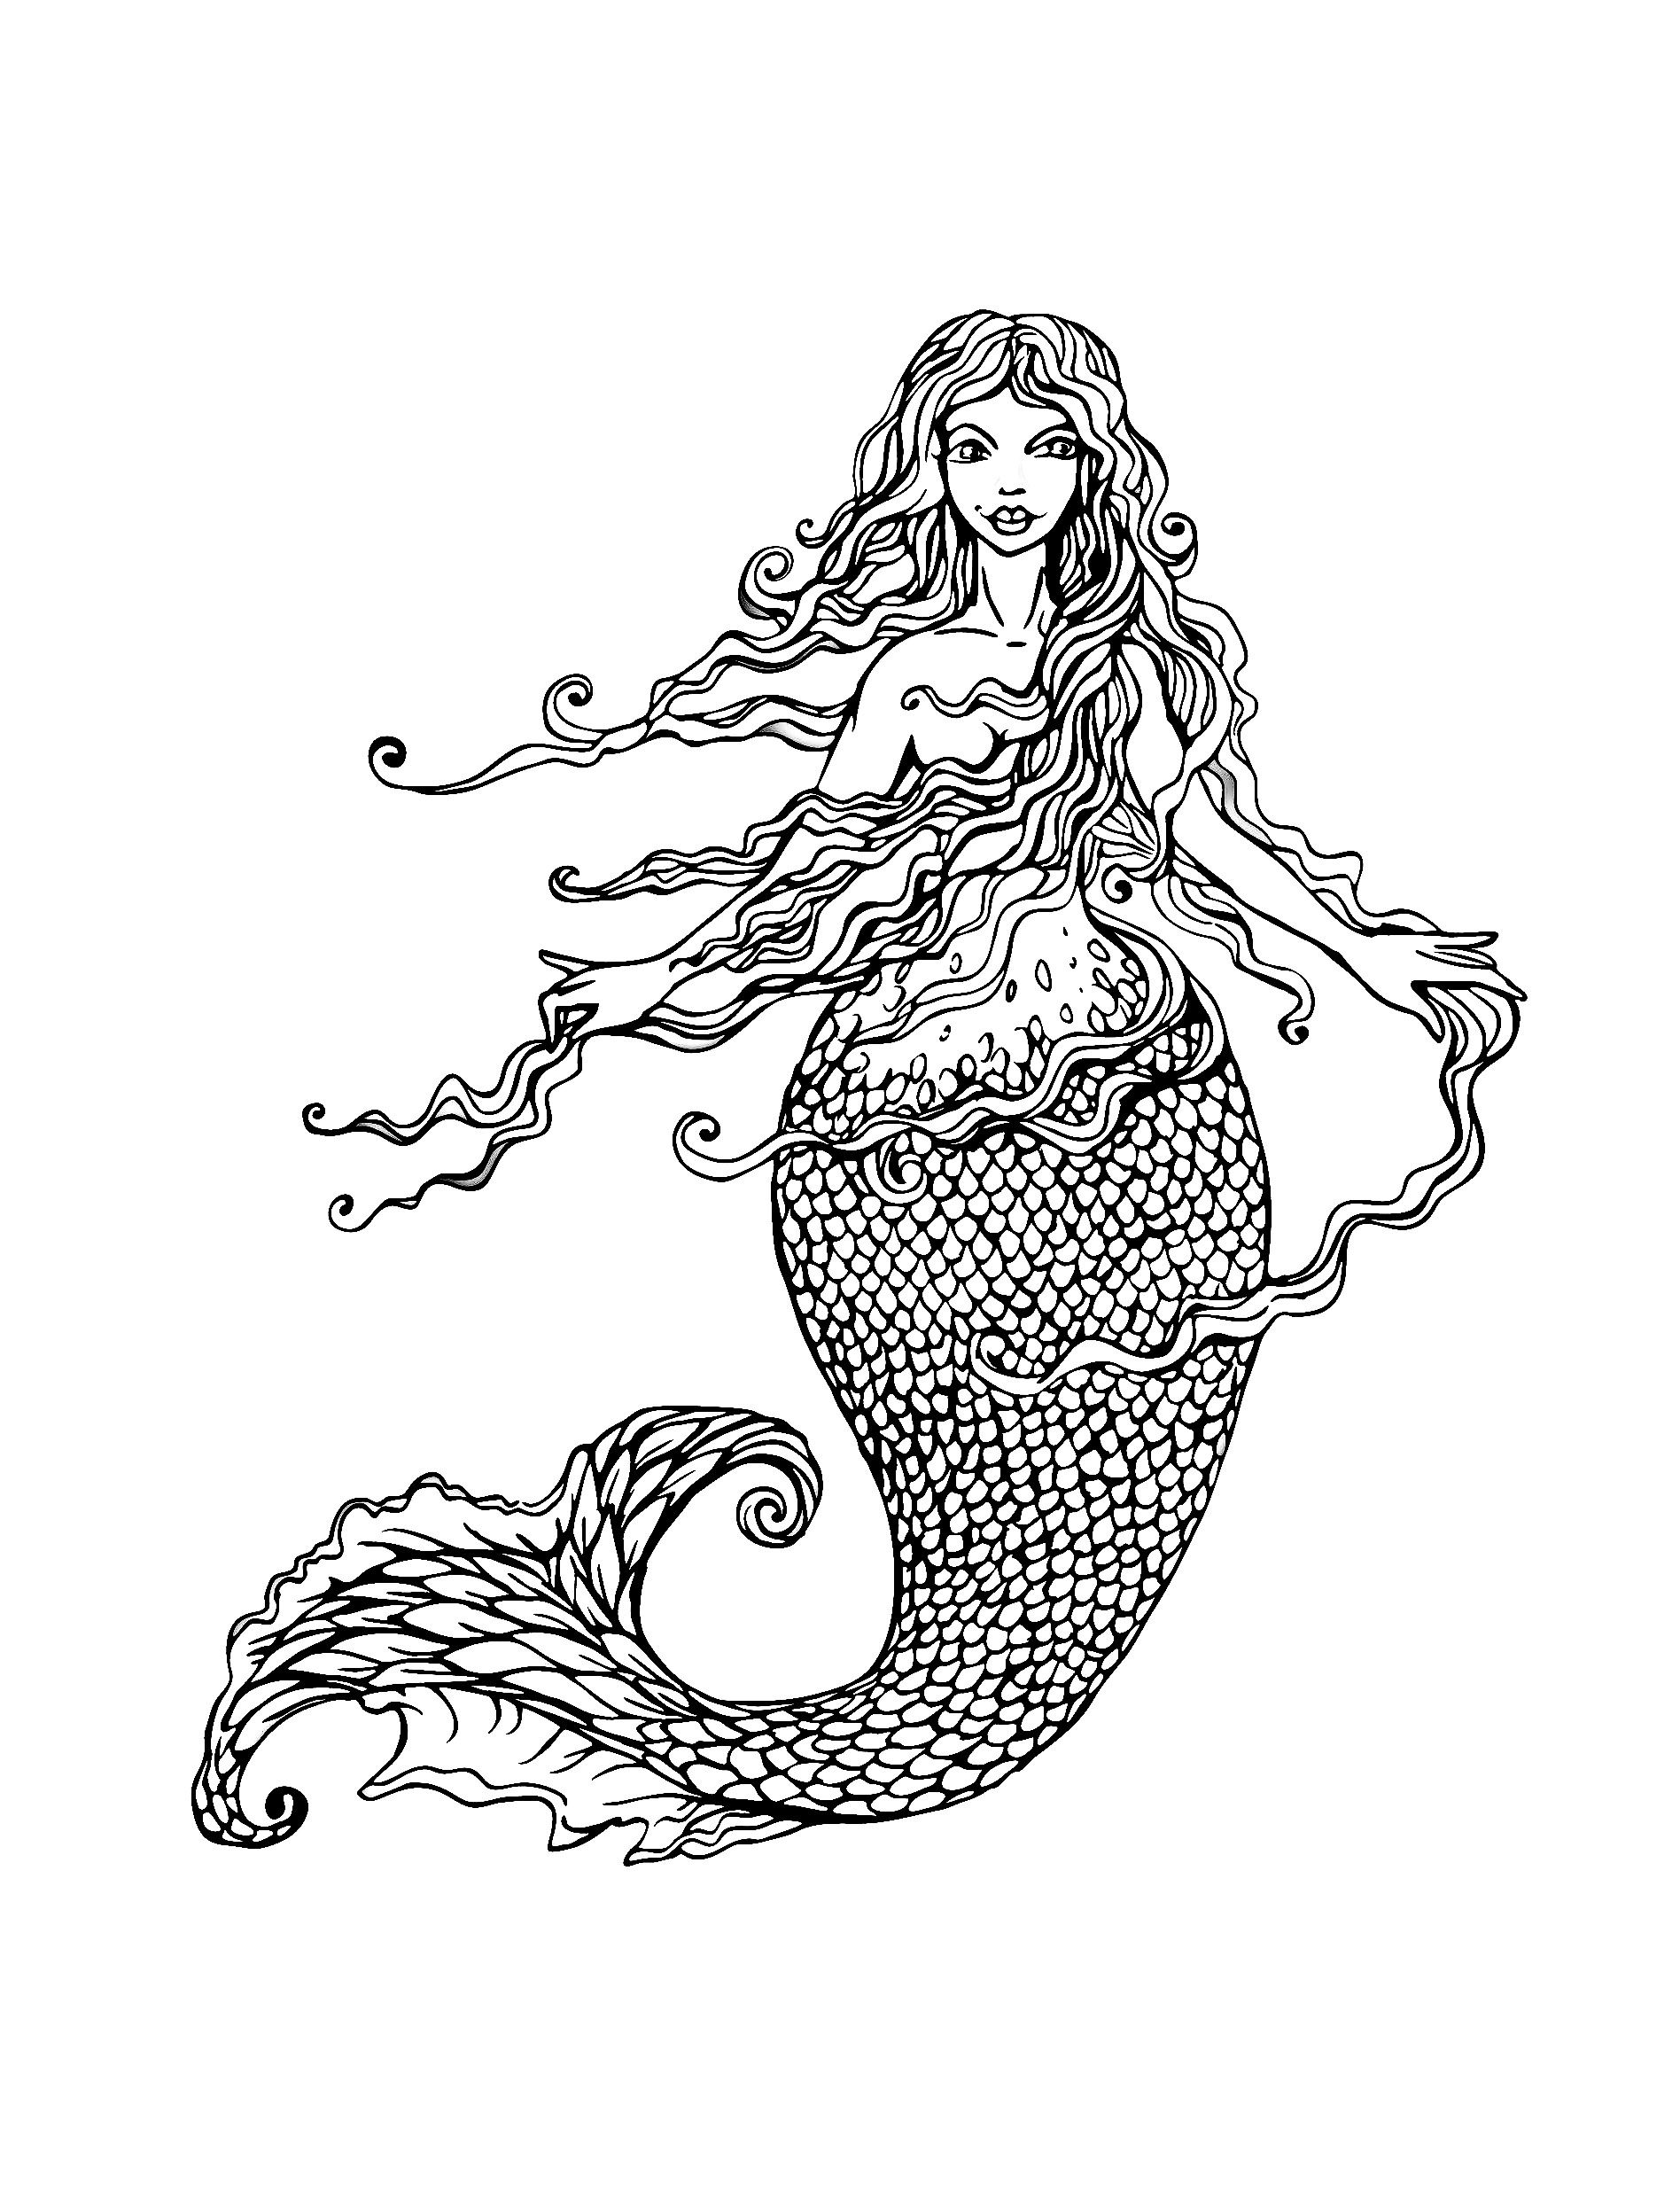 Free coloring page coloring-adult-mermaid-with-long-hair-by-lian2011 ...